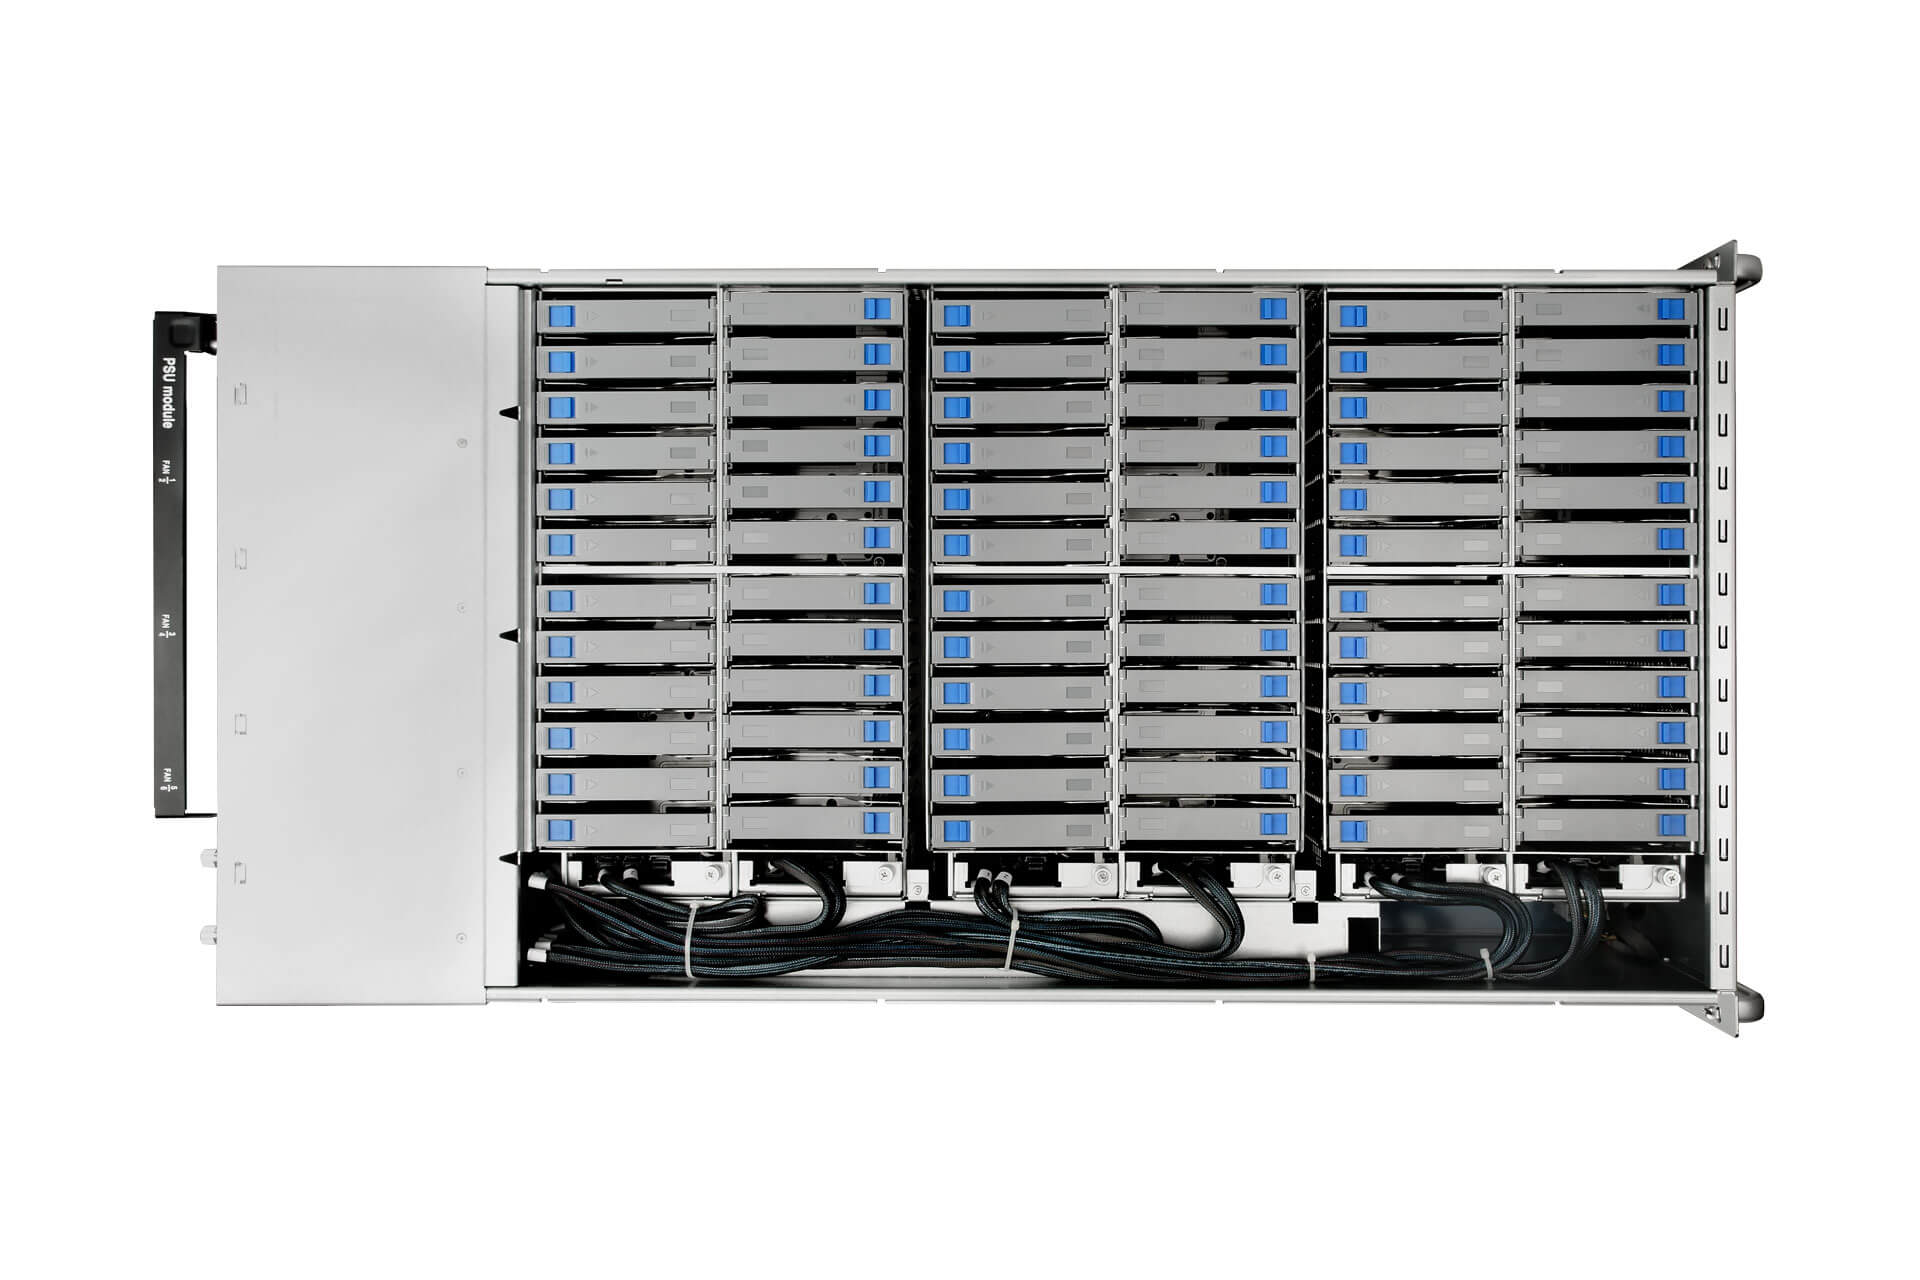 IW-RJ472-05 - server system assembly